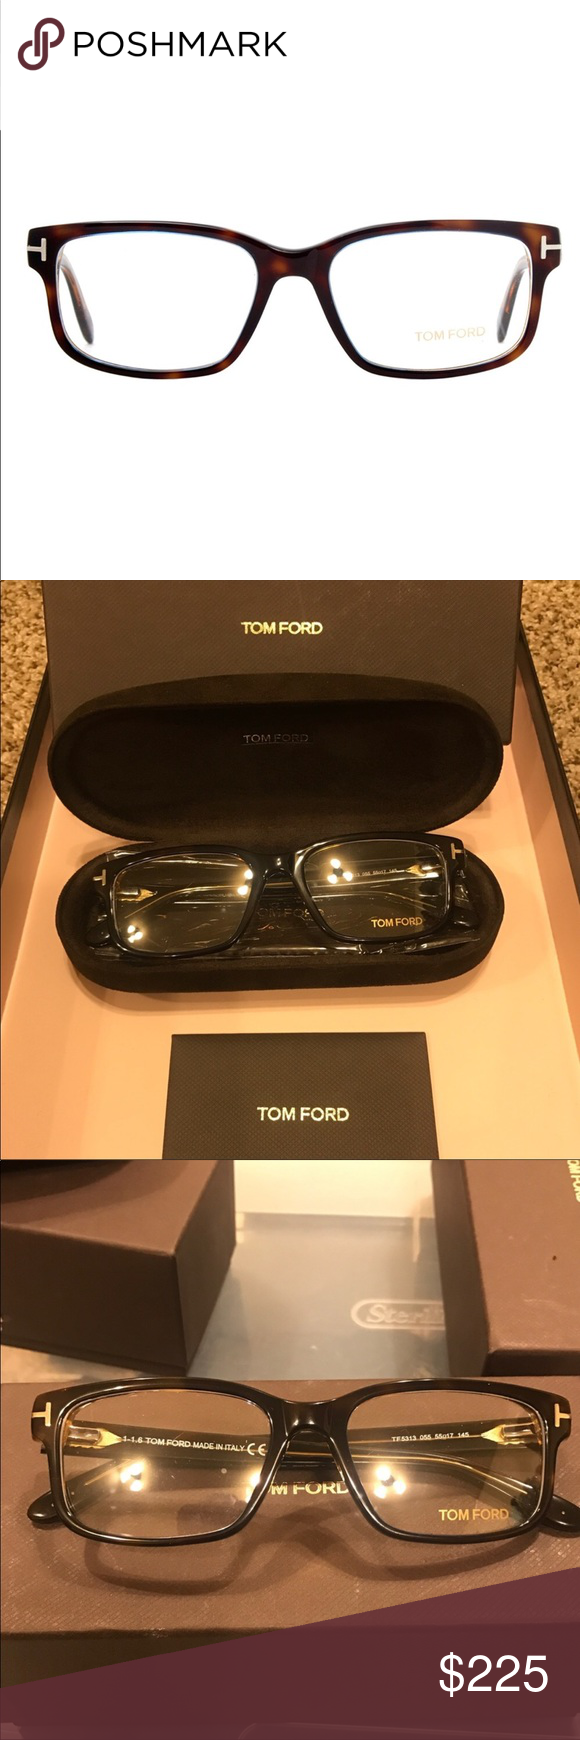 fbcc1dbaca05b Authentic TOM FORD 5313 Authentic unisex Tom Ford glasses. TF5313. Brand new  with box